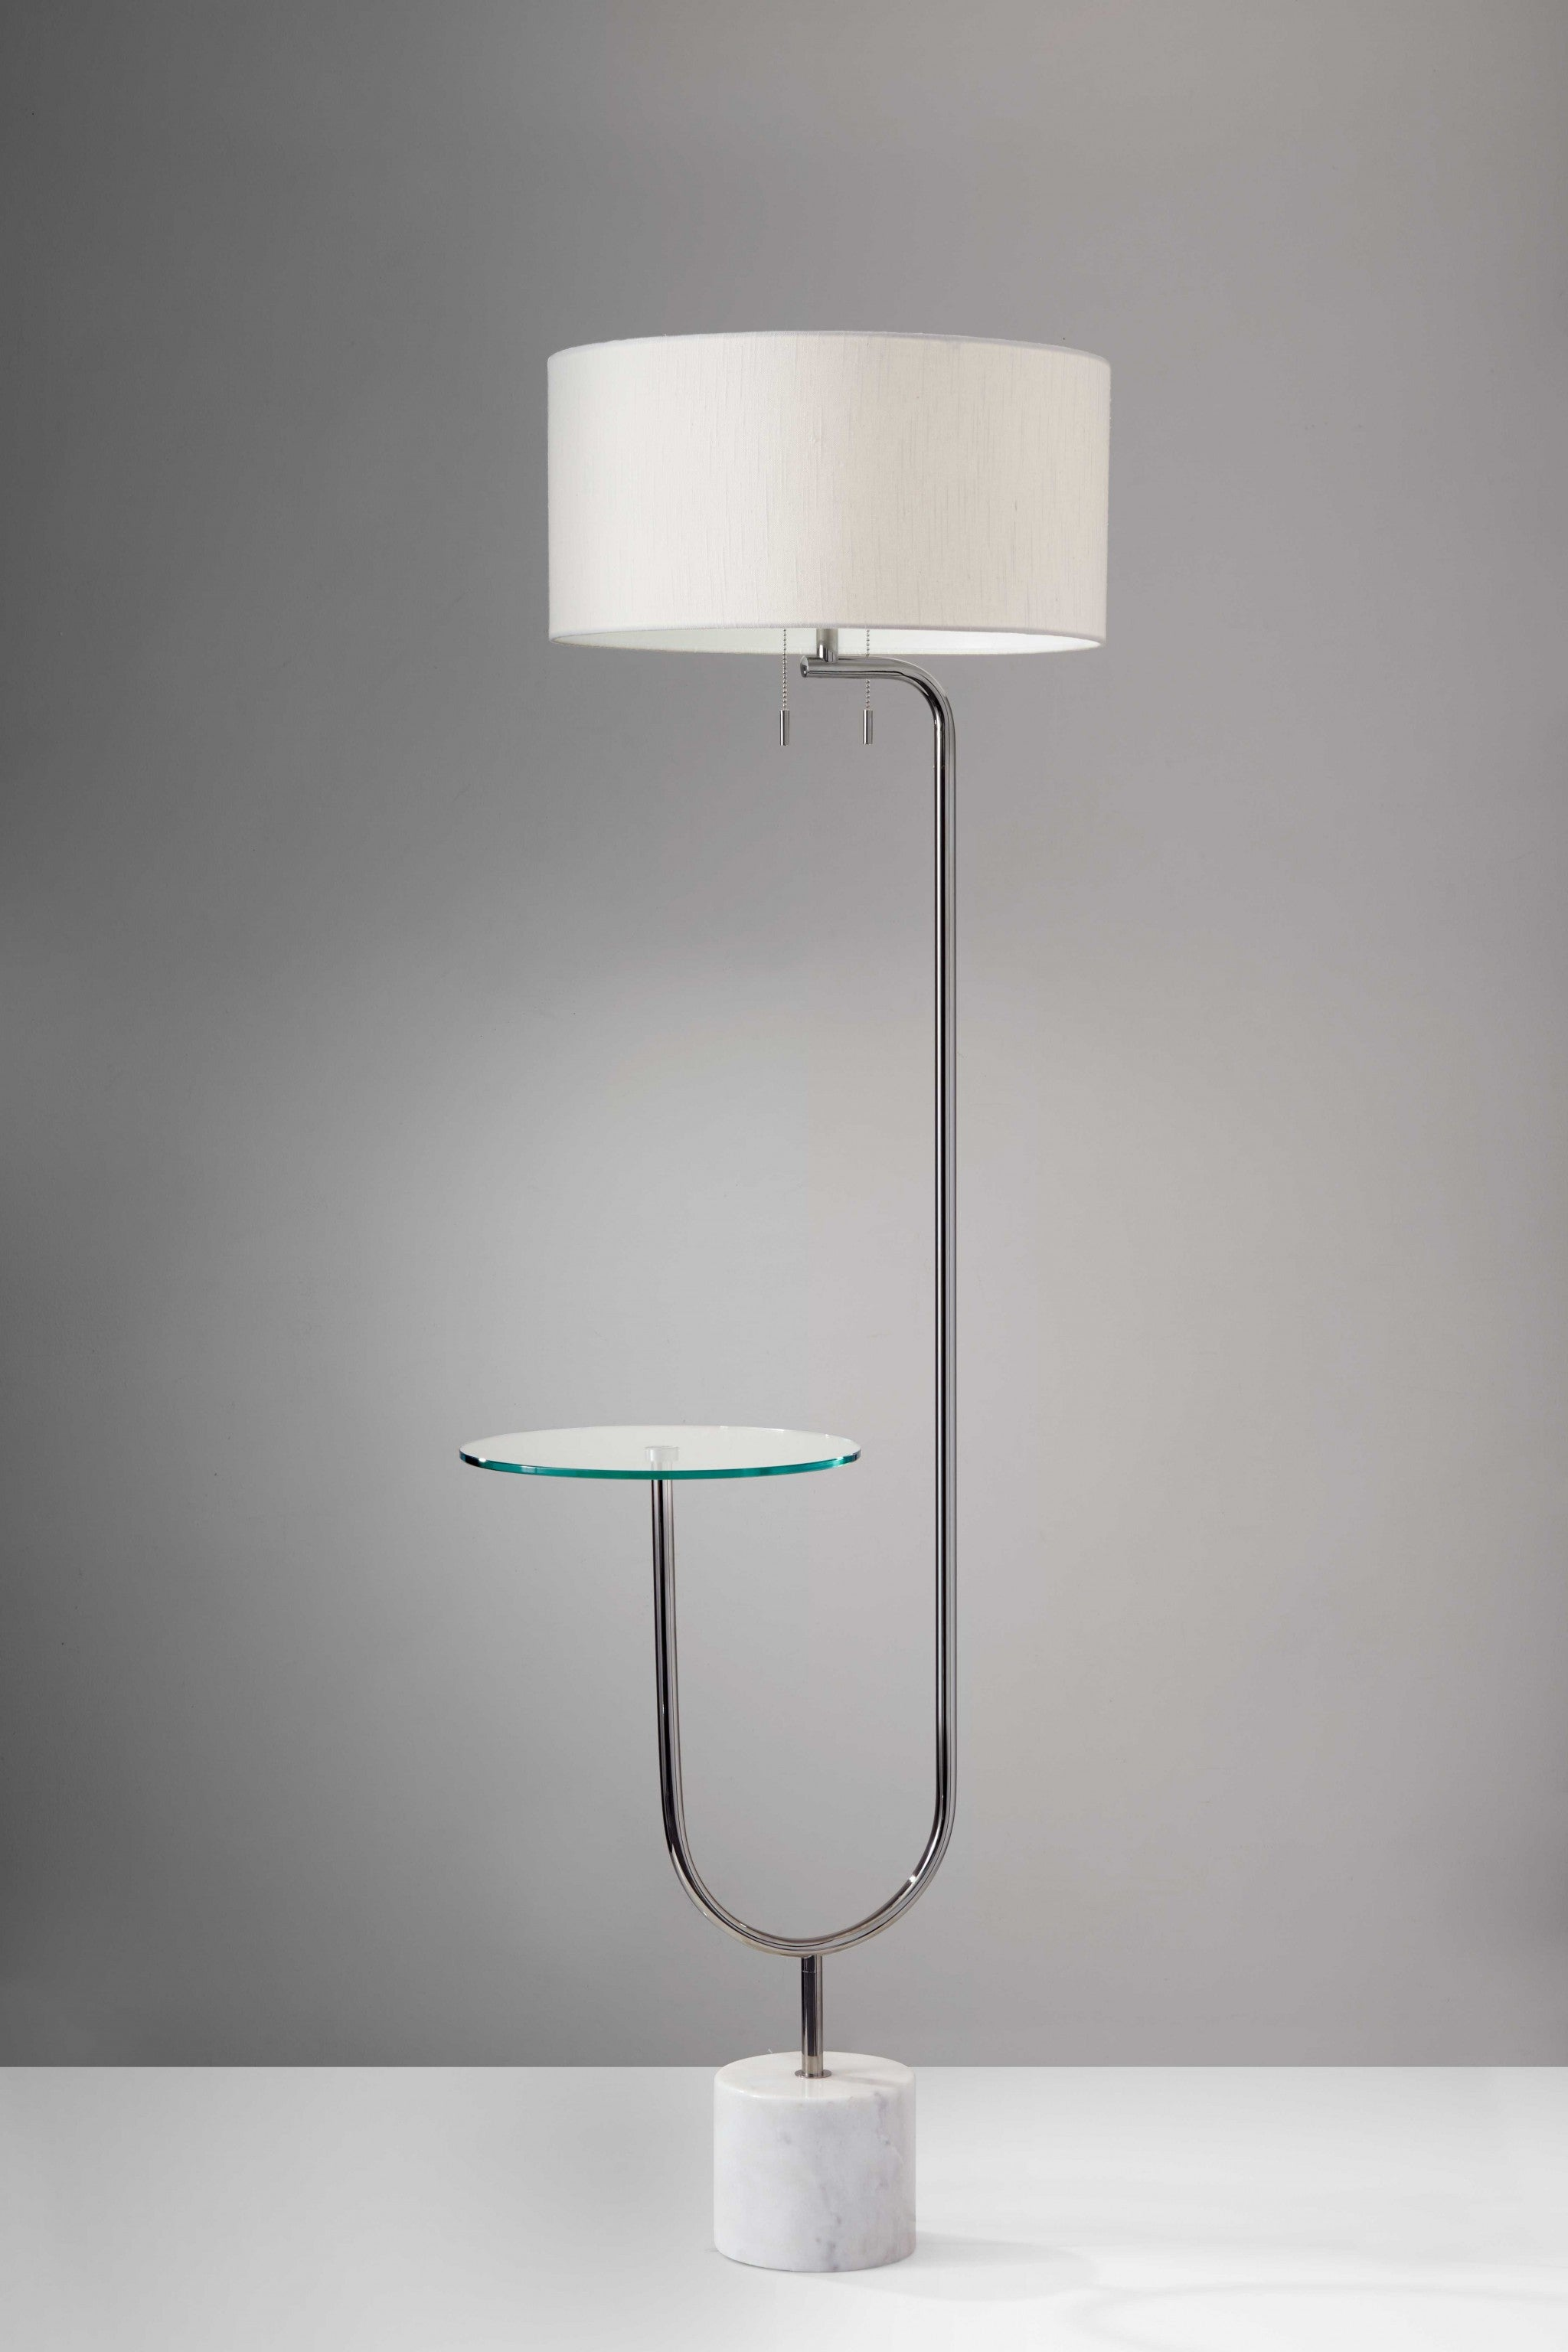 Looped Chrome Floor Lamp with Glass Cocktail Tabletop